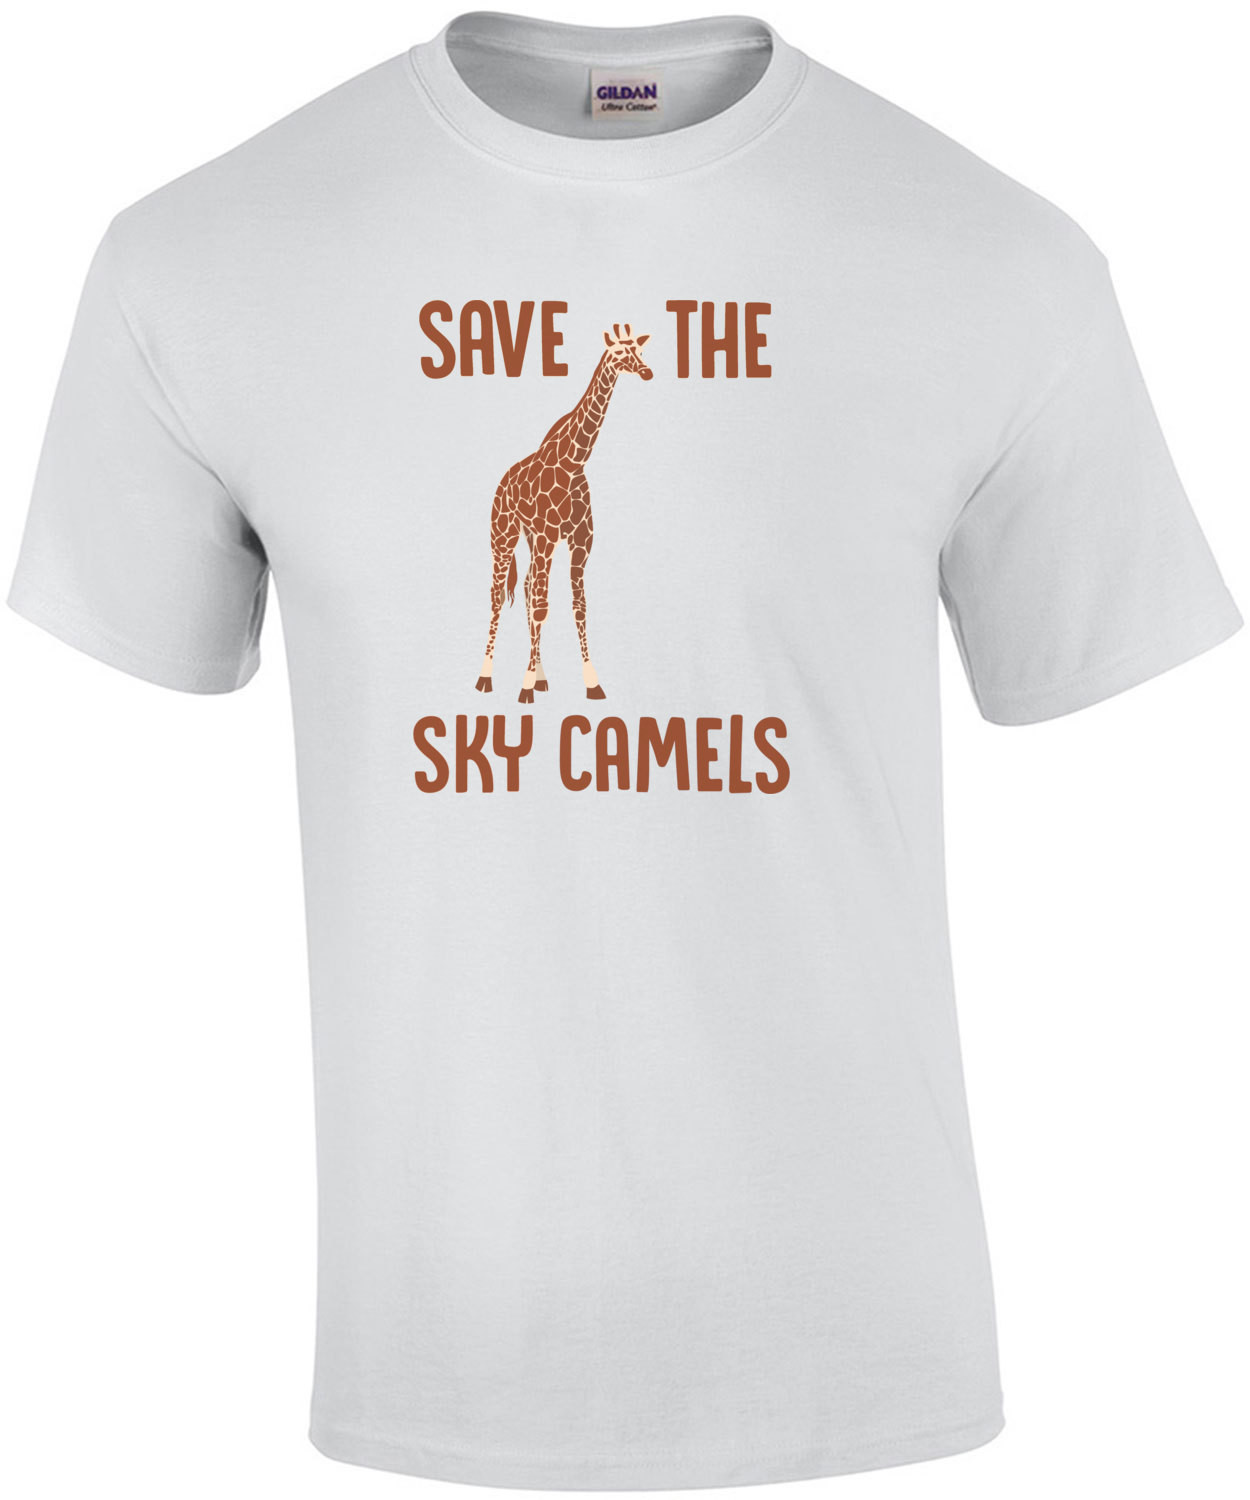 Save the sky camels - funny giraffe t-shirt